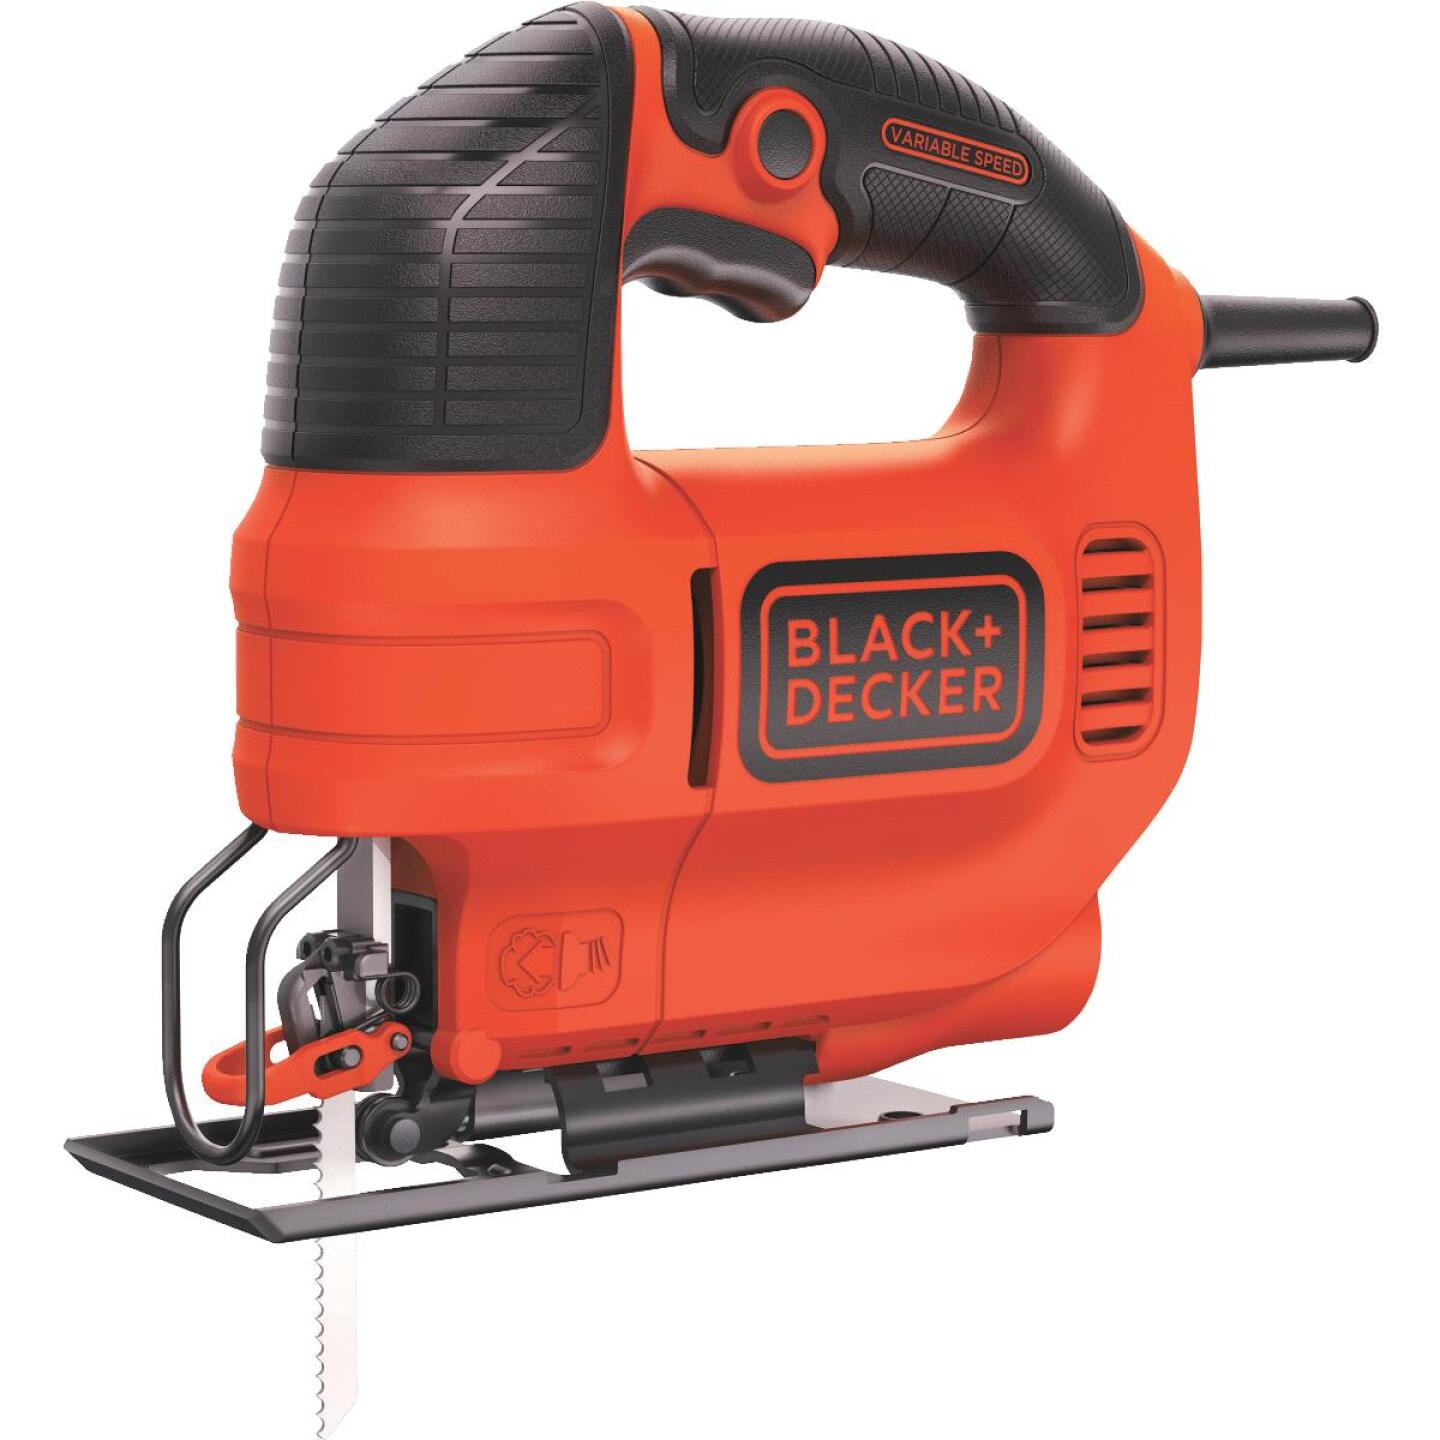 Black & Decker 4.5A 0 to 3000 SPM Jig Saw Image 3